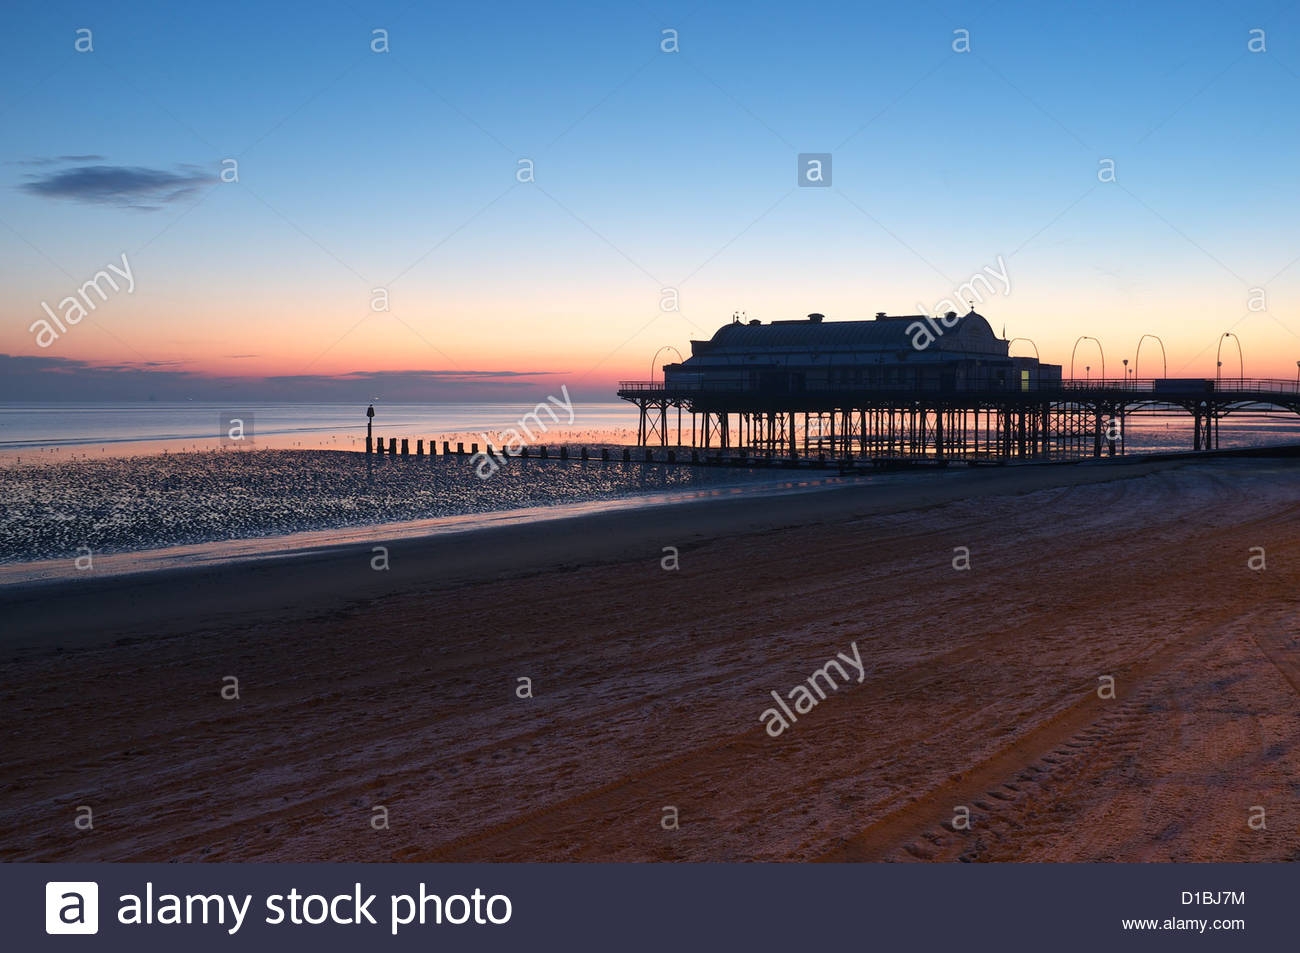 Cleethorpes pier during a frosty morning sunrise, Lincolnshire, UK. - Stock Image